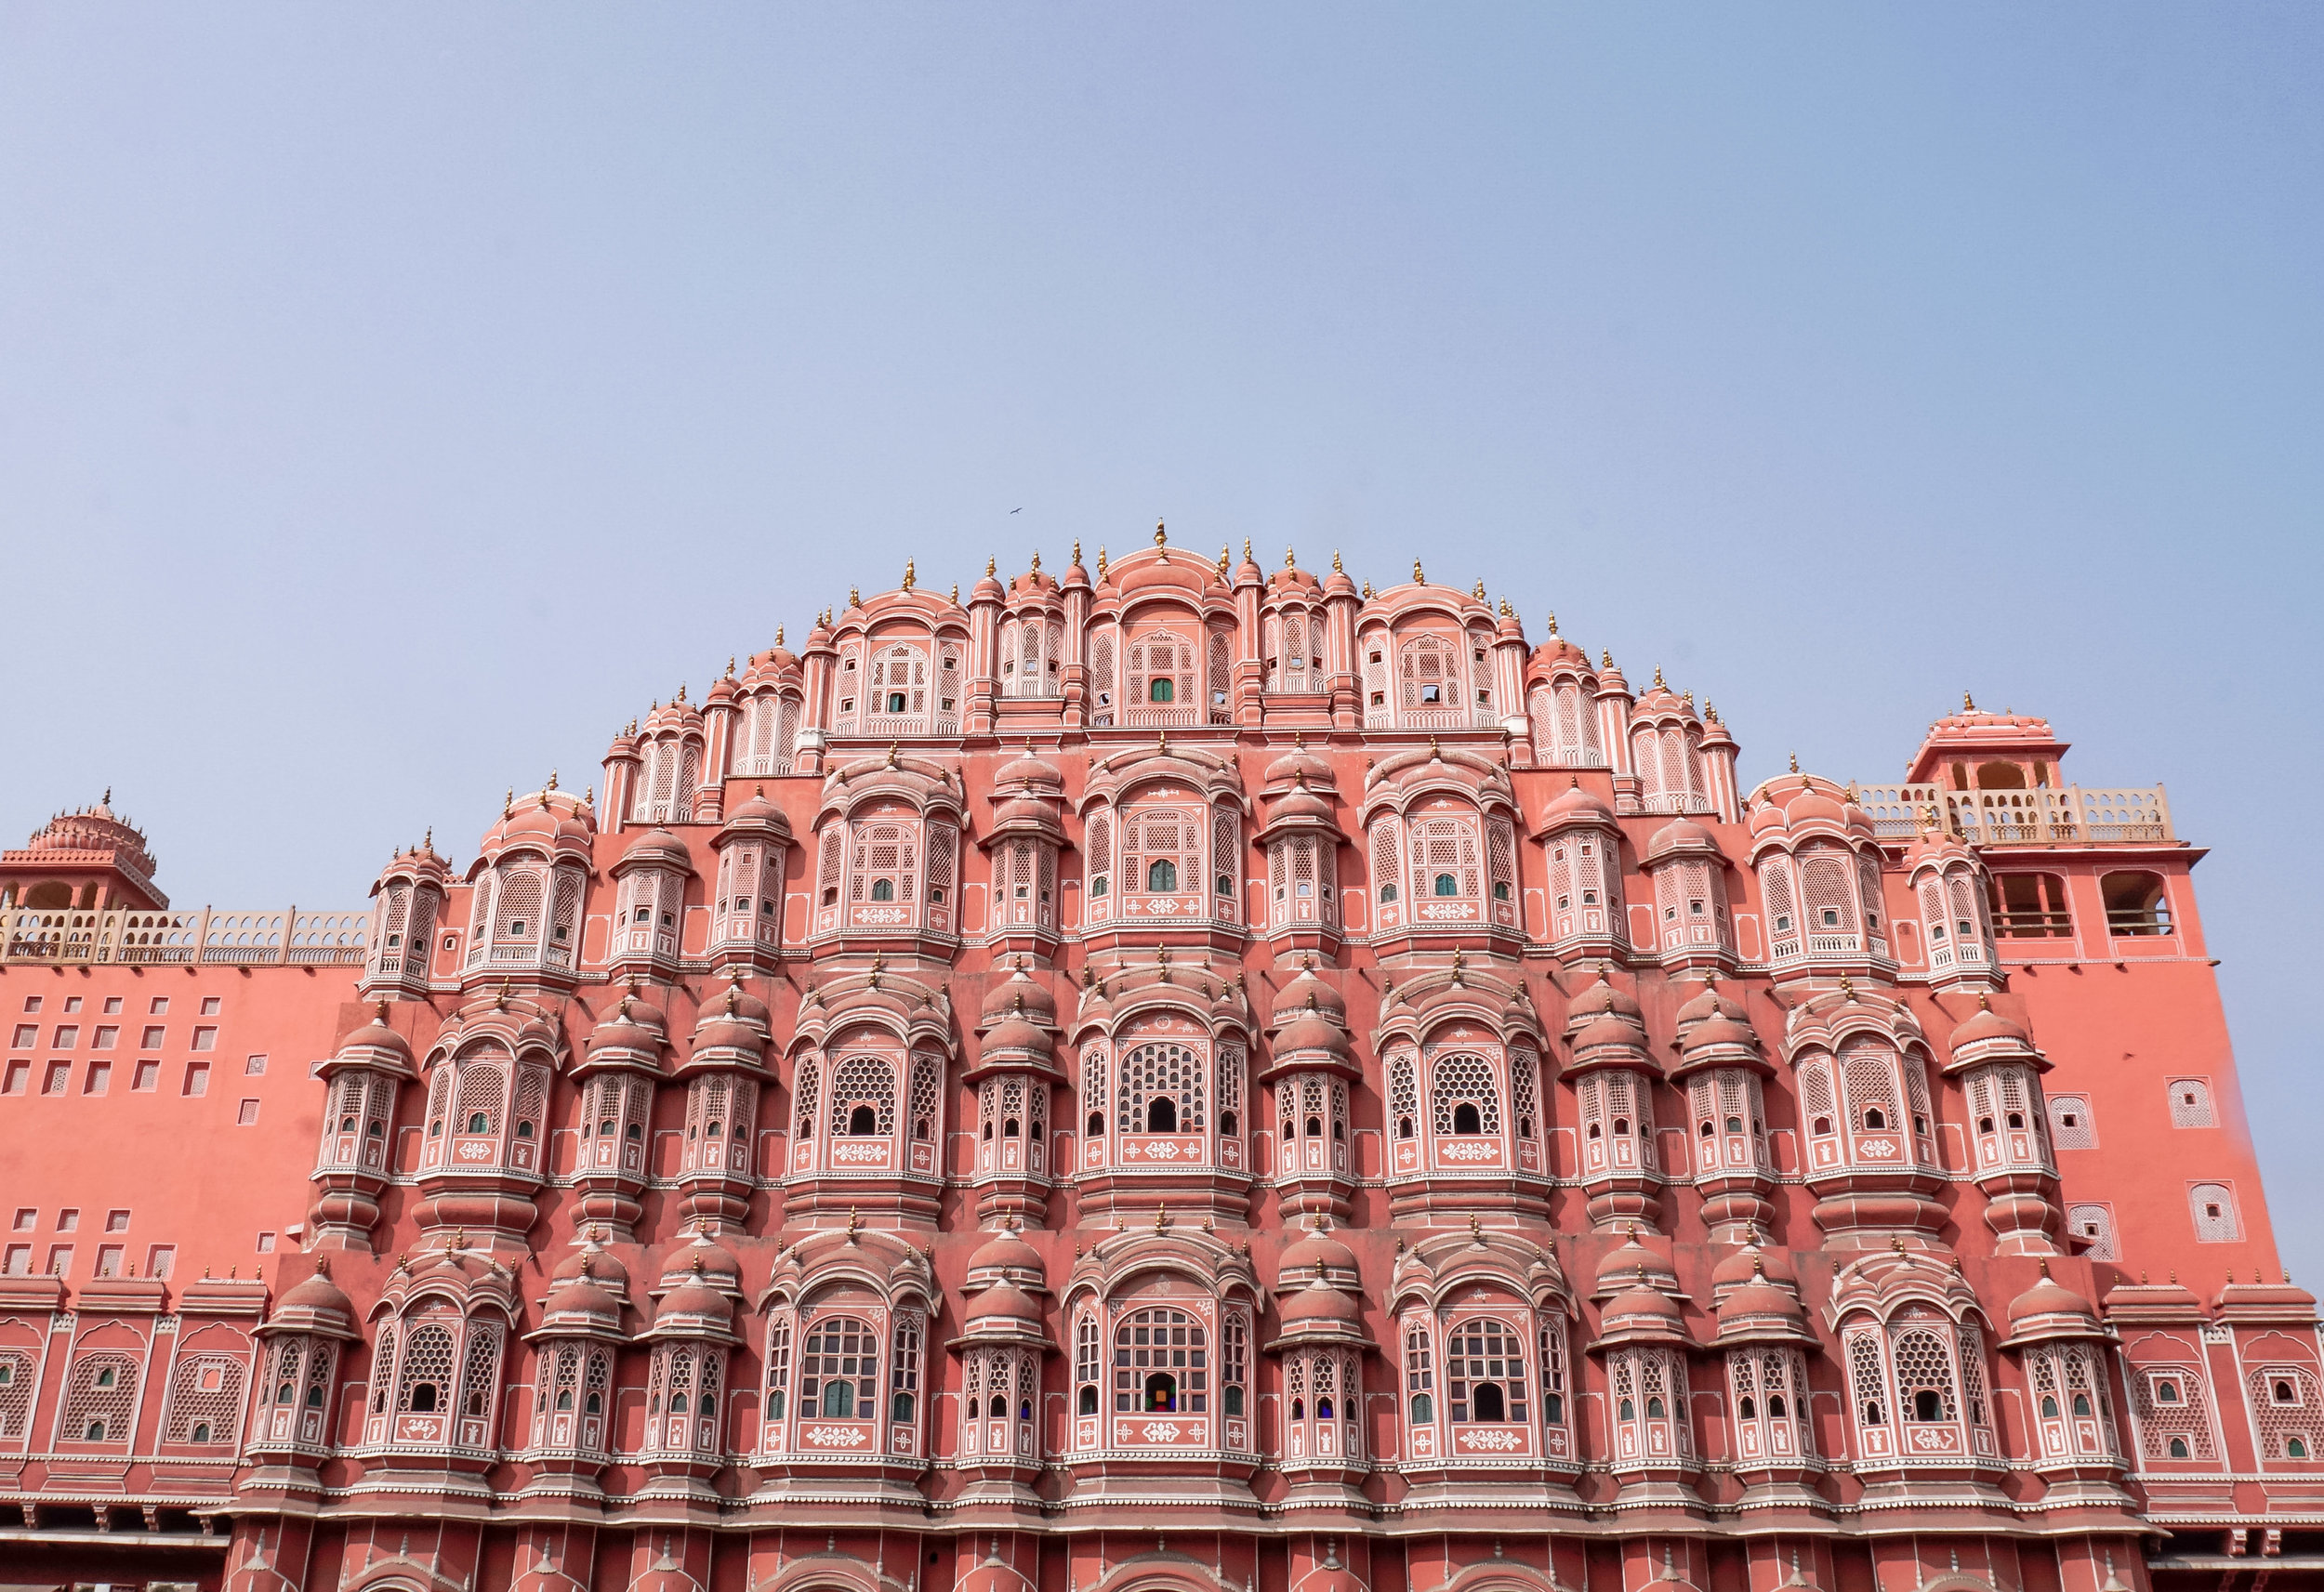 curio.trips.india.pink.city.architecture.landscape.jpg